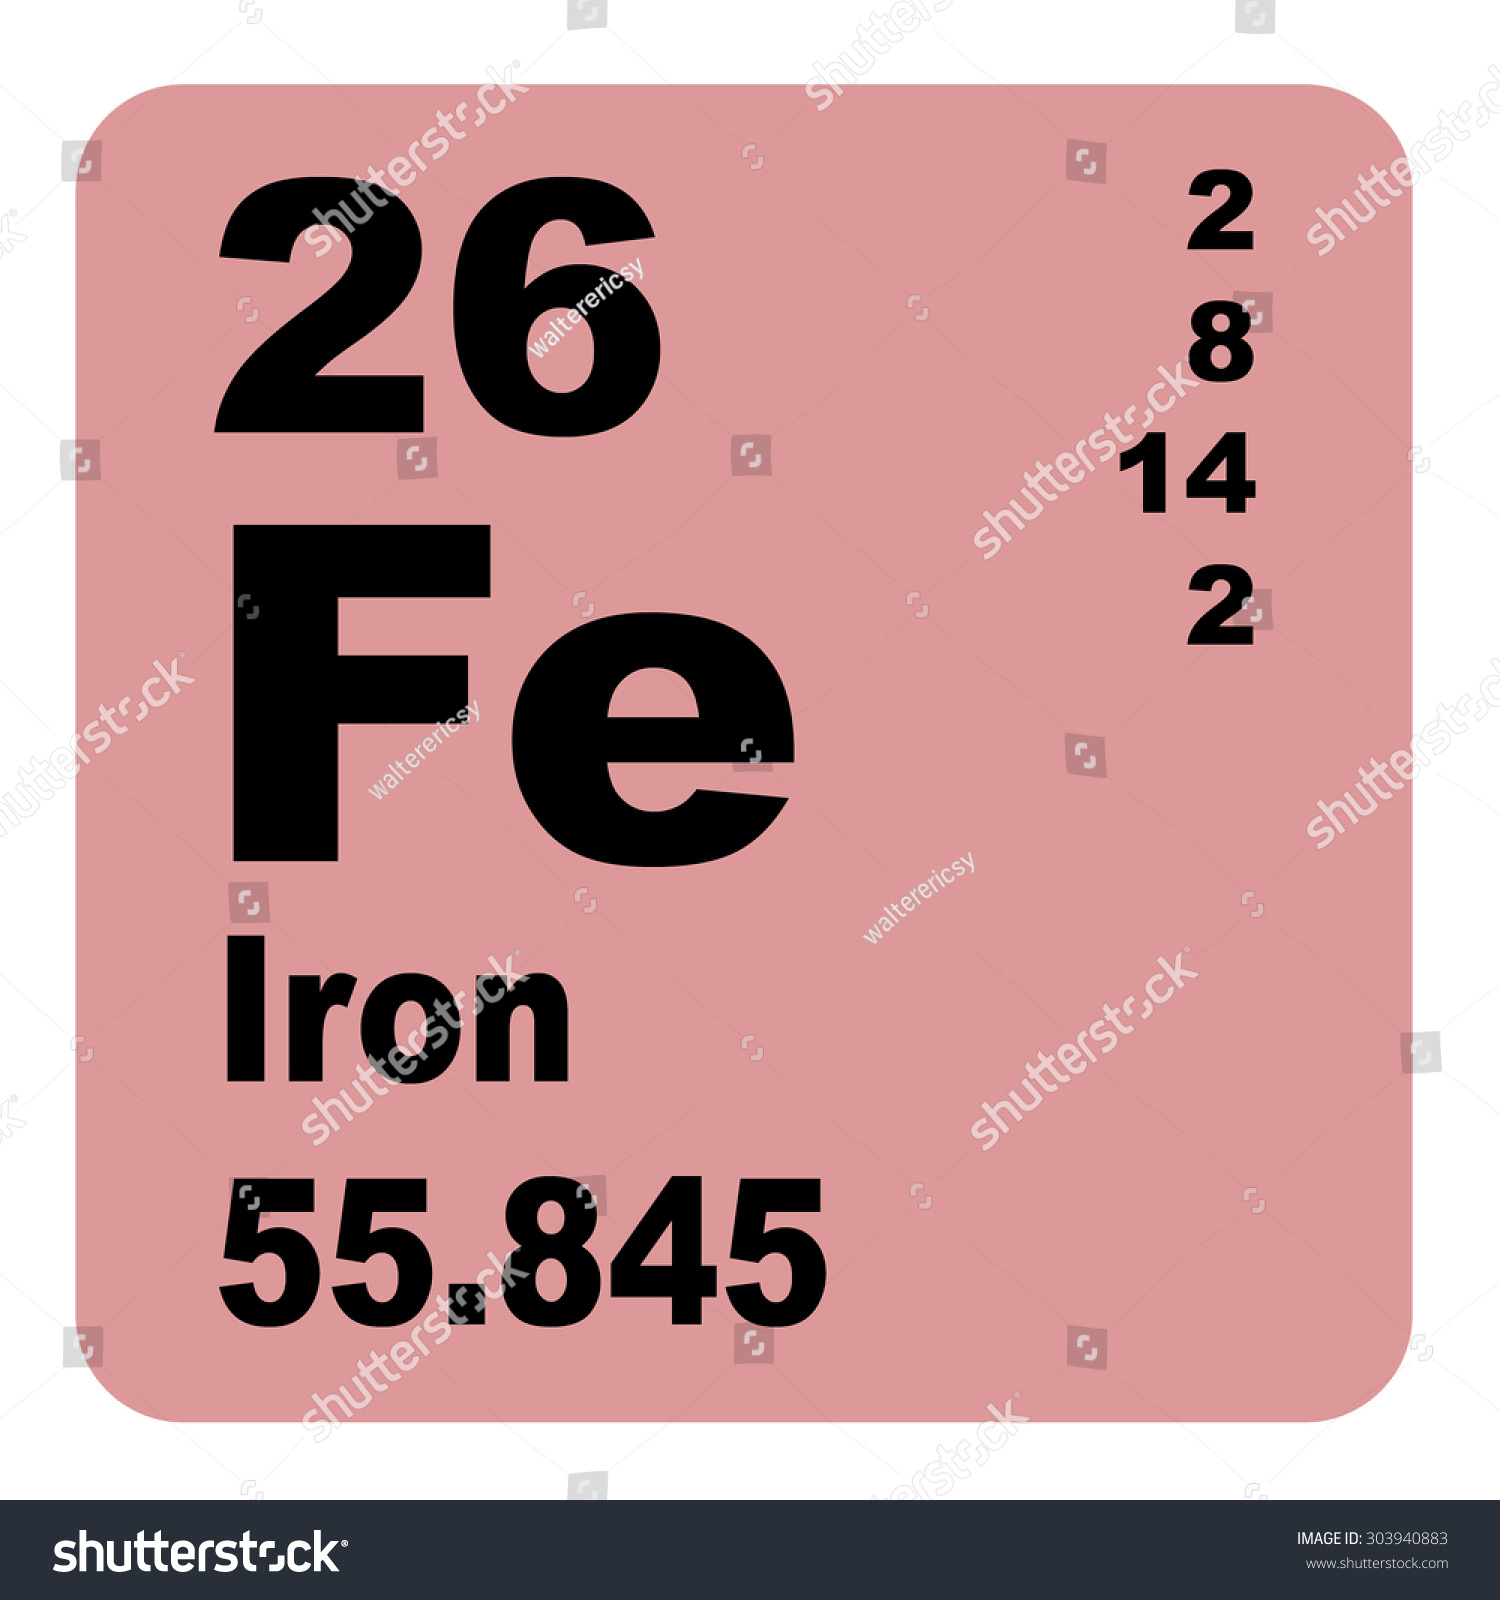 Periodic table for iron gallery periodic table images iron periodic table choice image periodic table images iron periodic table elements stock illustration 303940883 iron gamestrikefo Choice Image